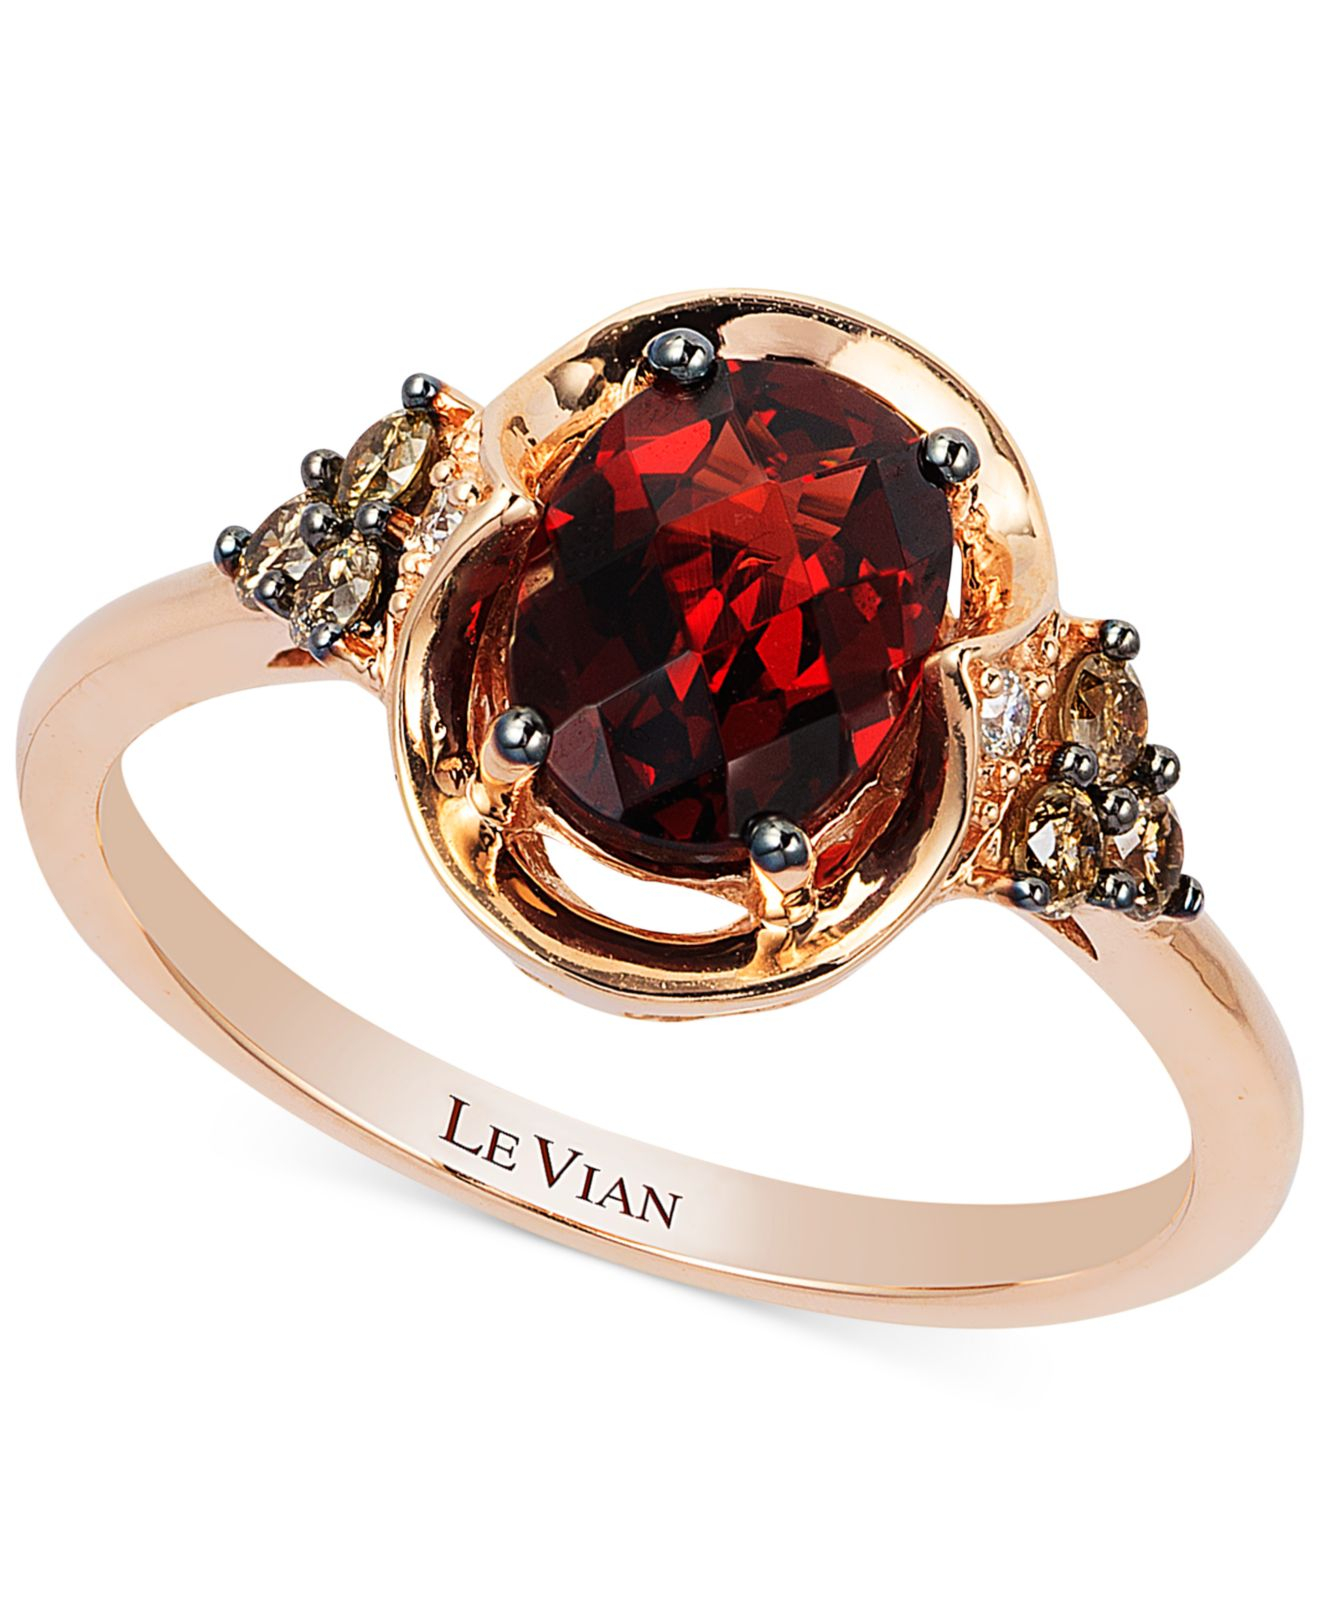 Le Vian Chrome Diopside Ring